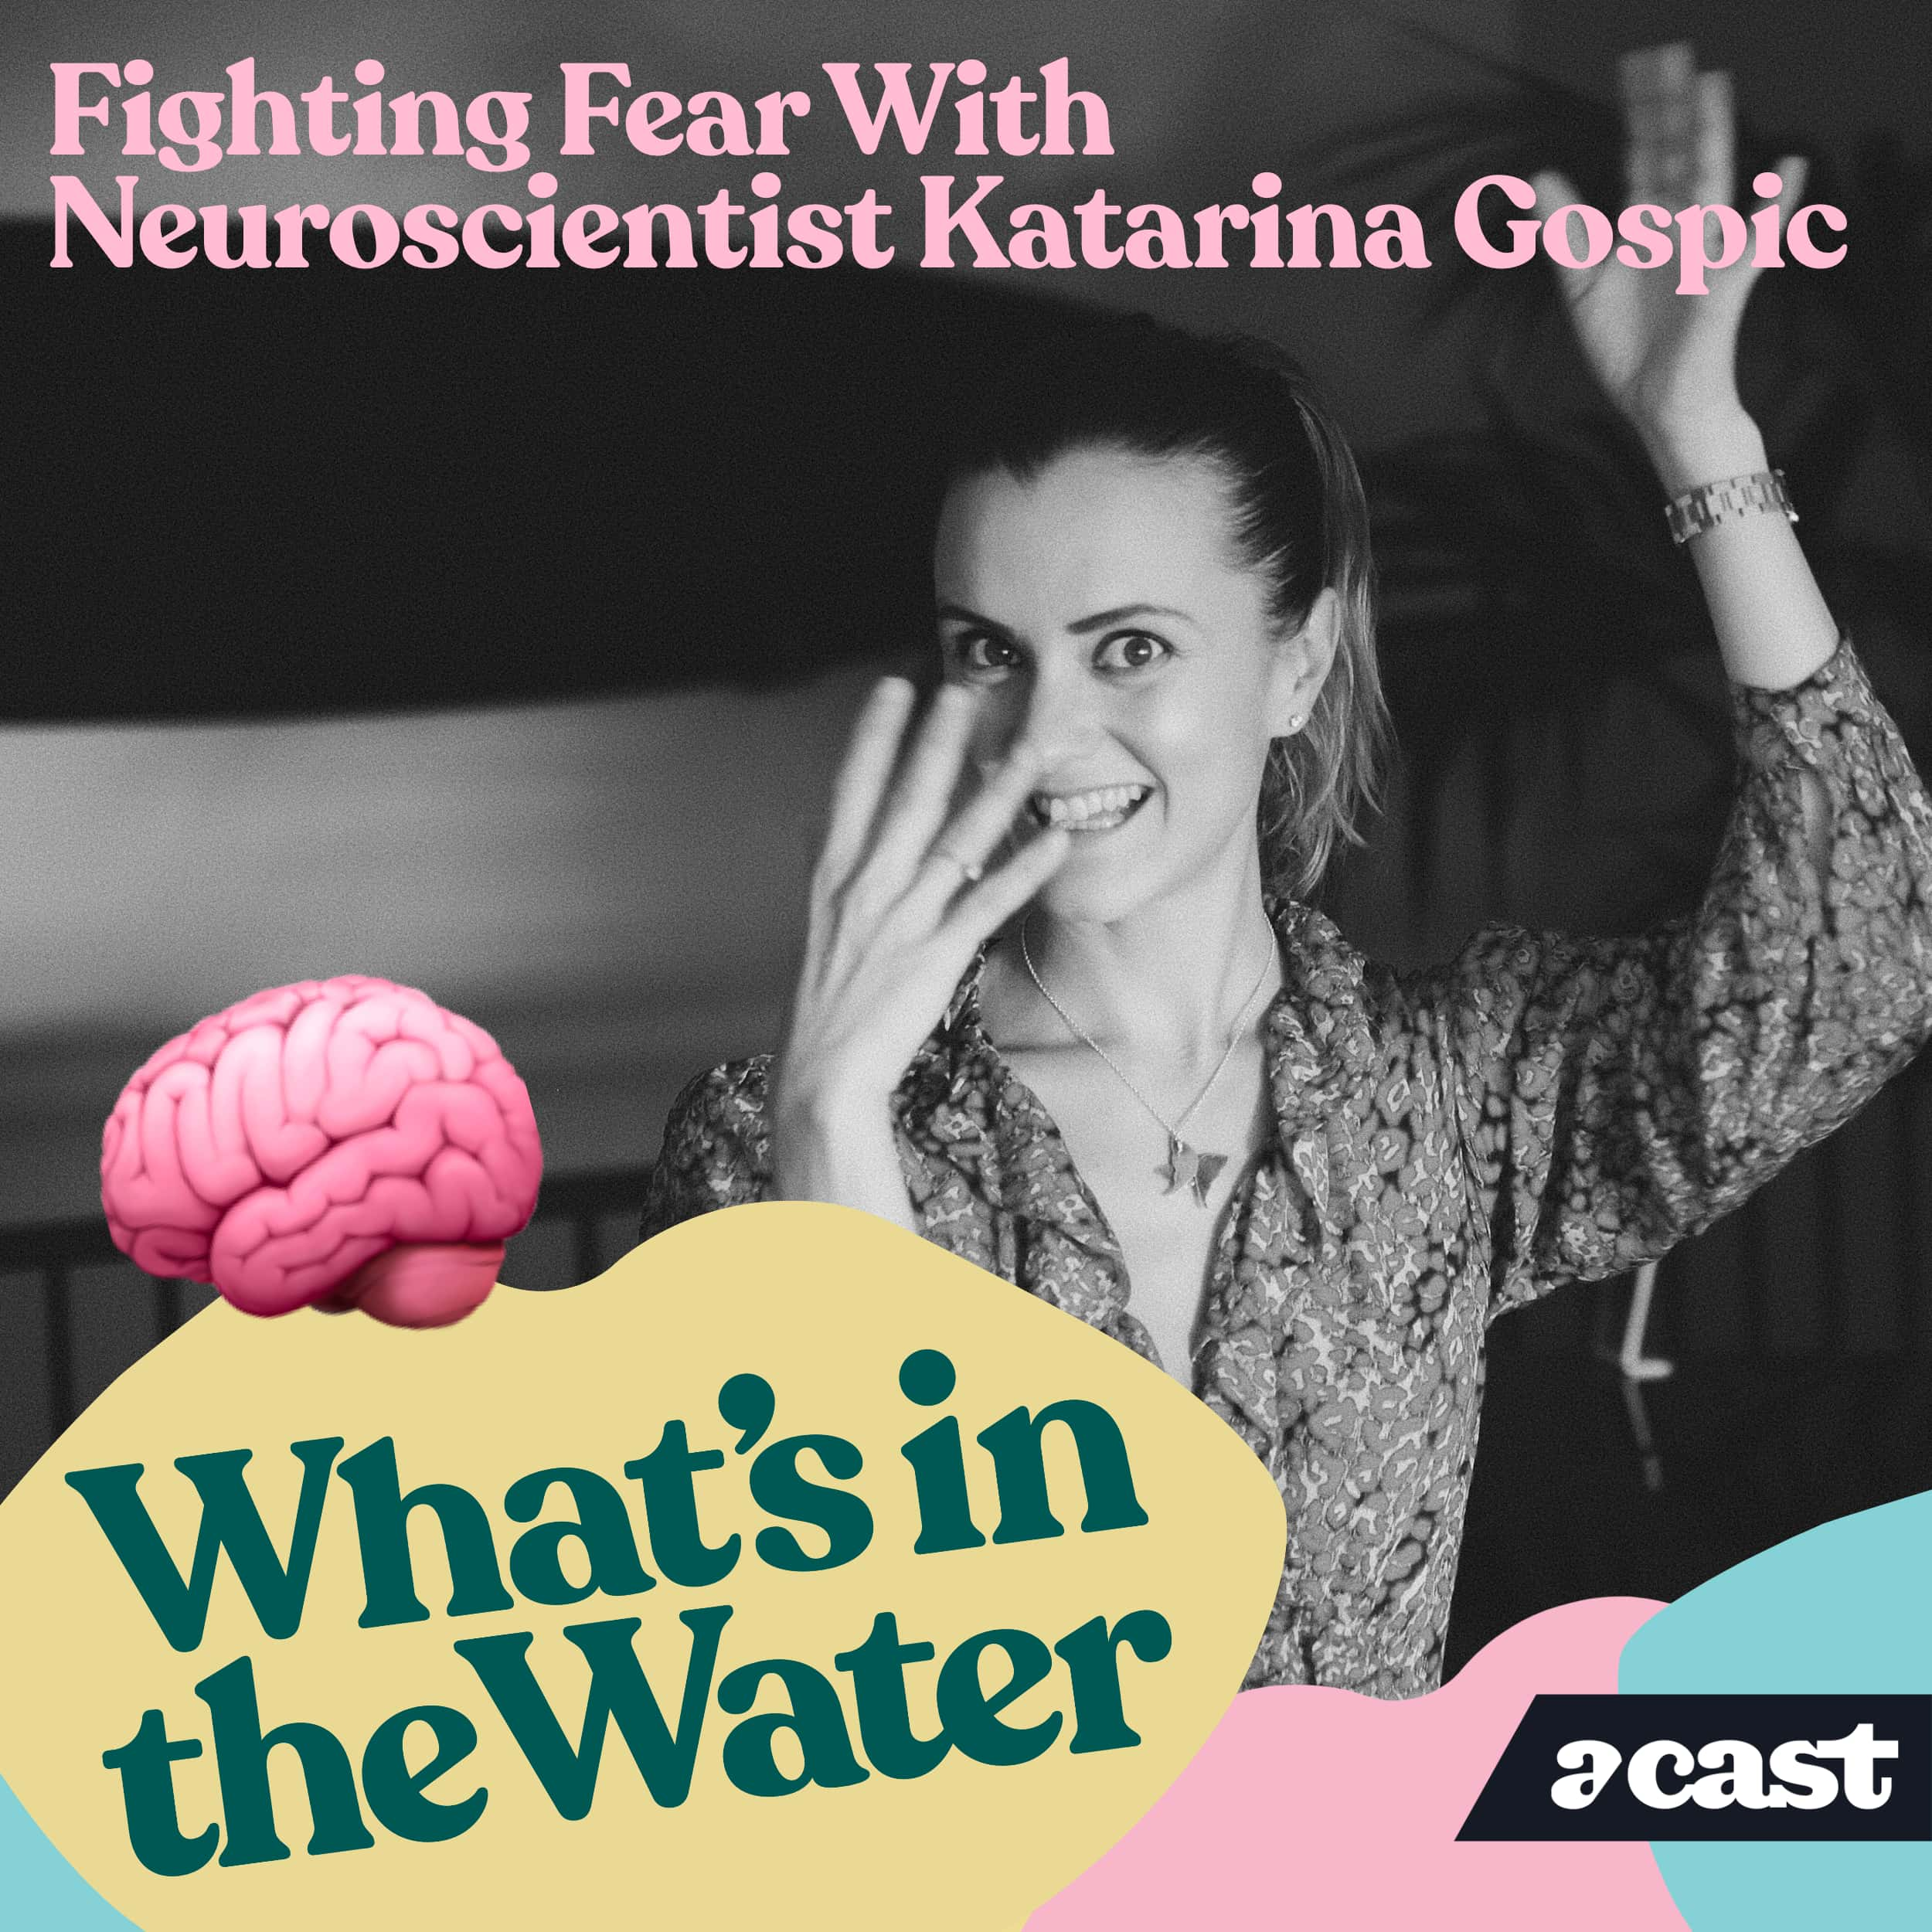 Fighting Fear with Neuroscientist Katarina Gospic